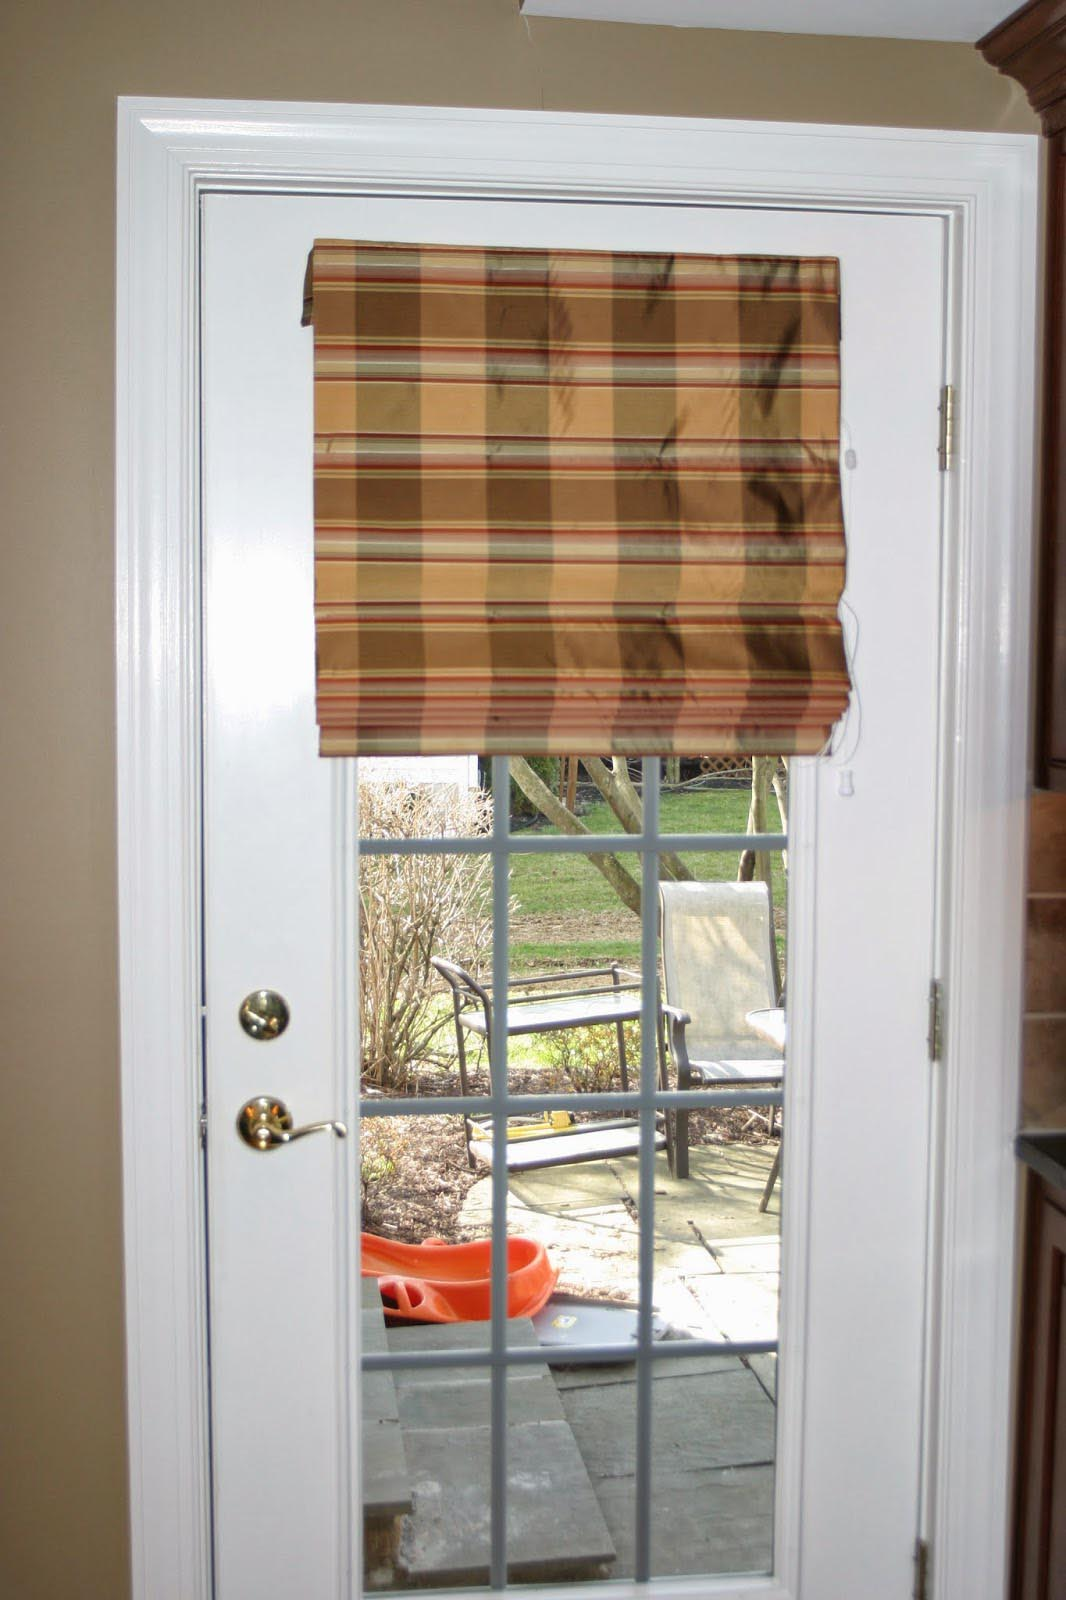 Fabric shades for french doors window treatments design for Door window shades blinds